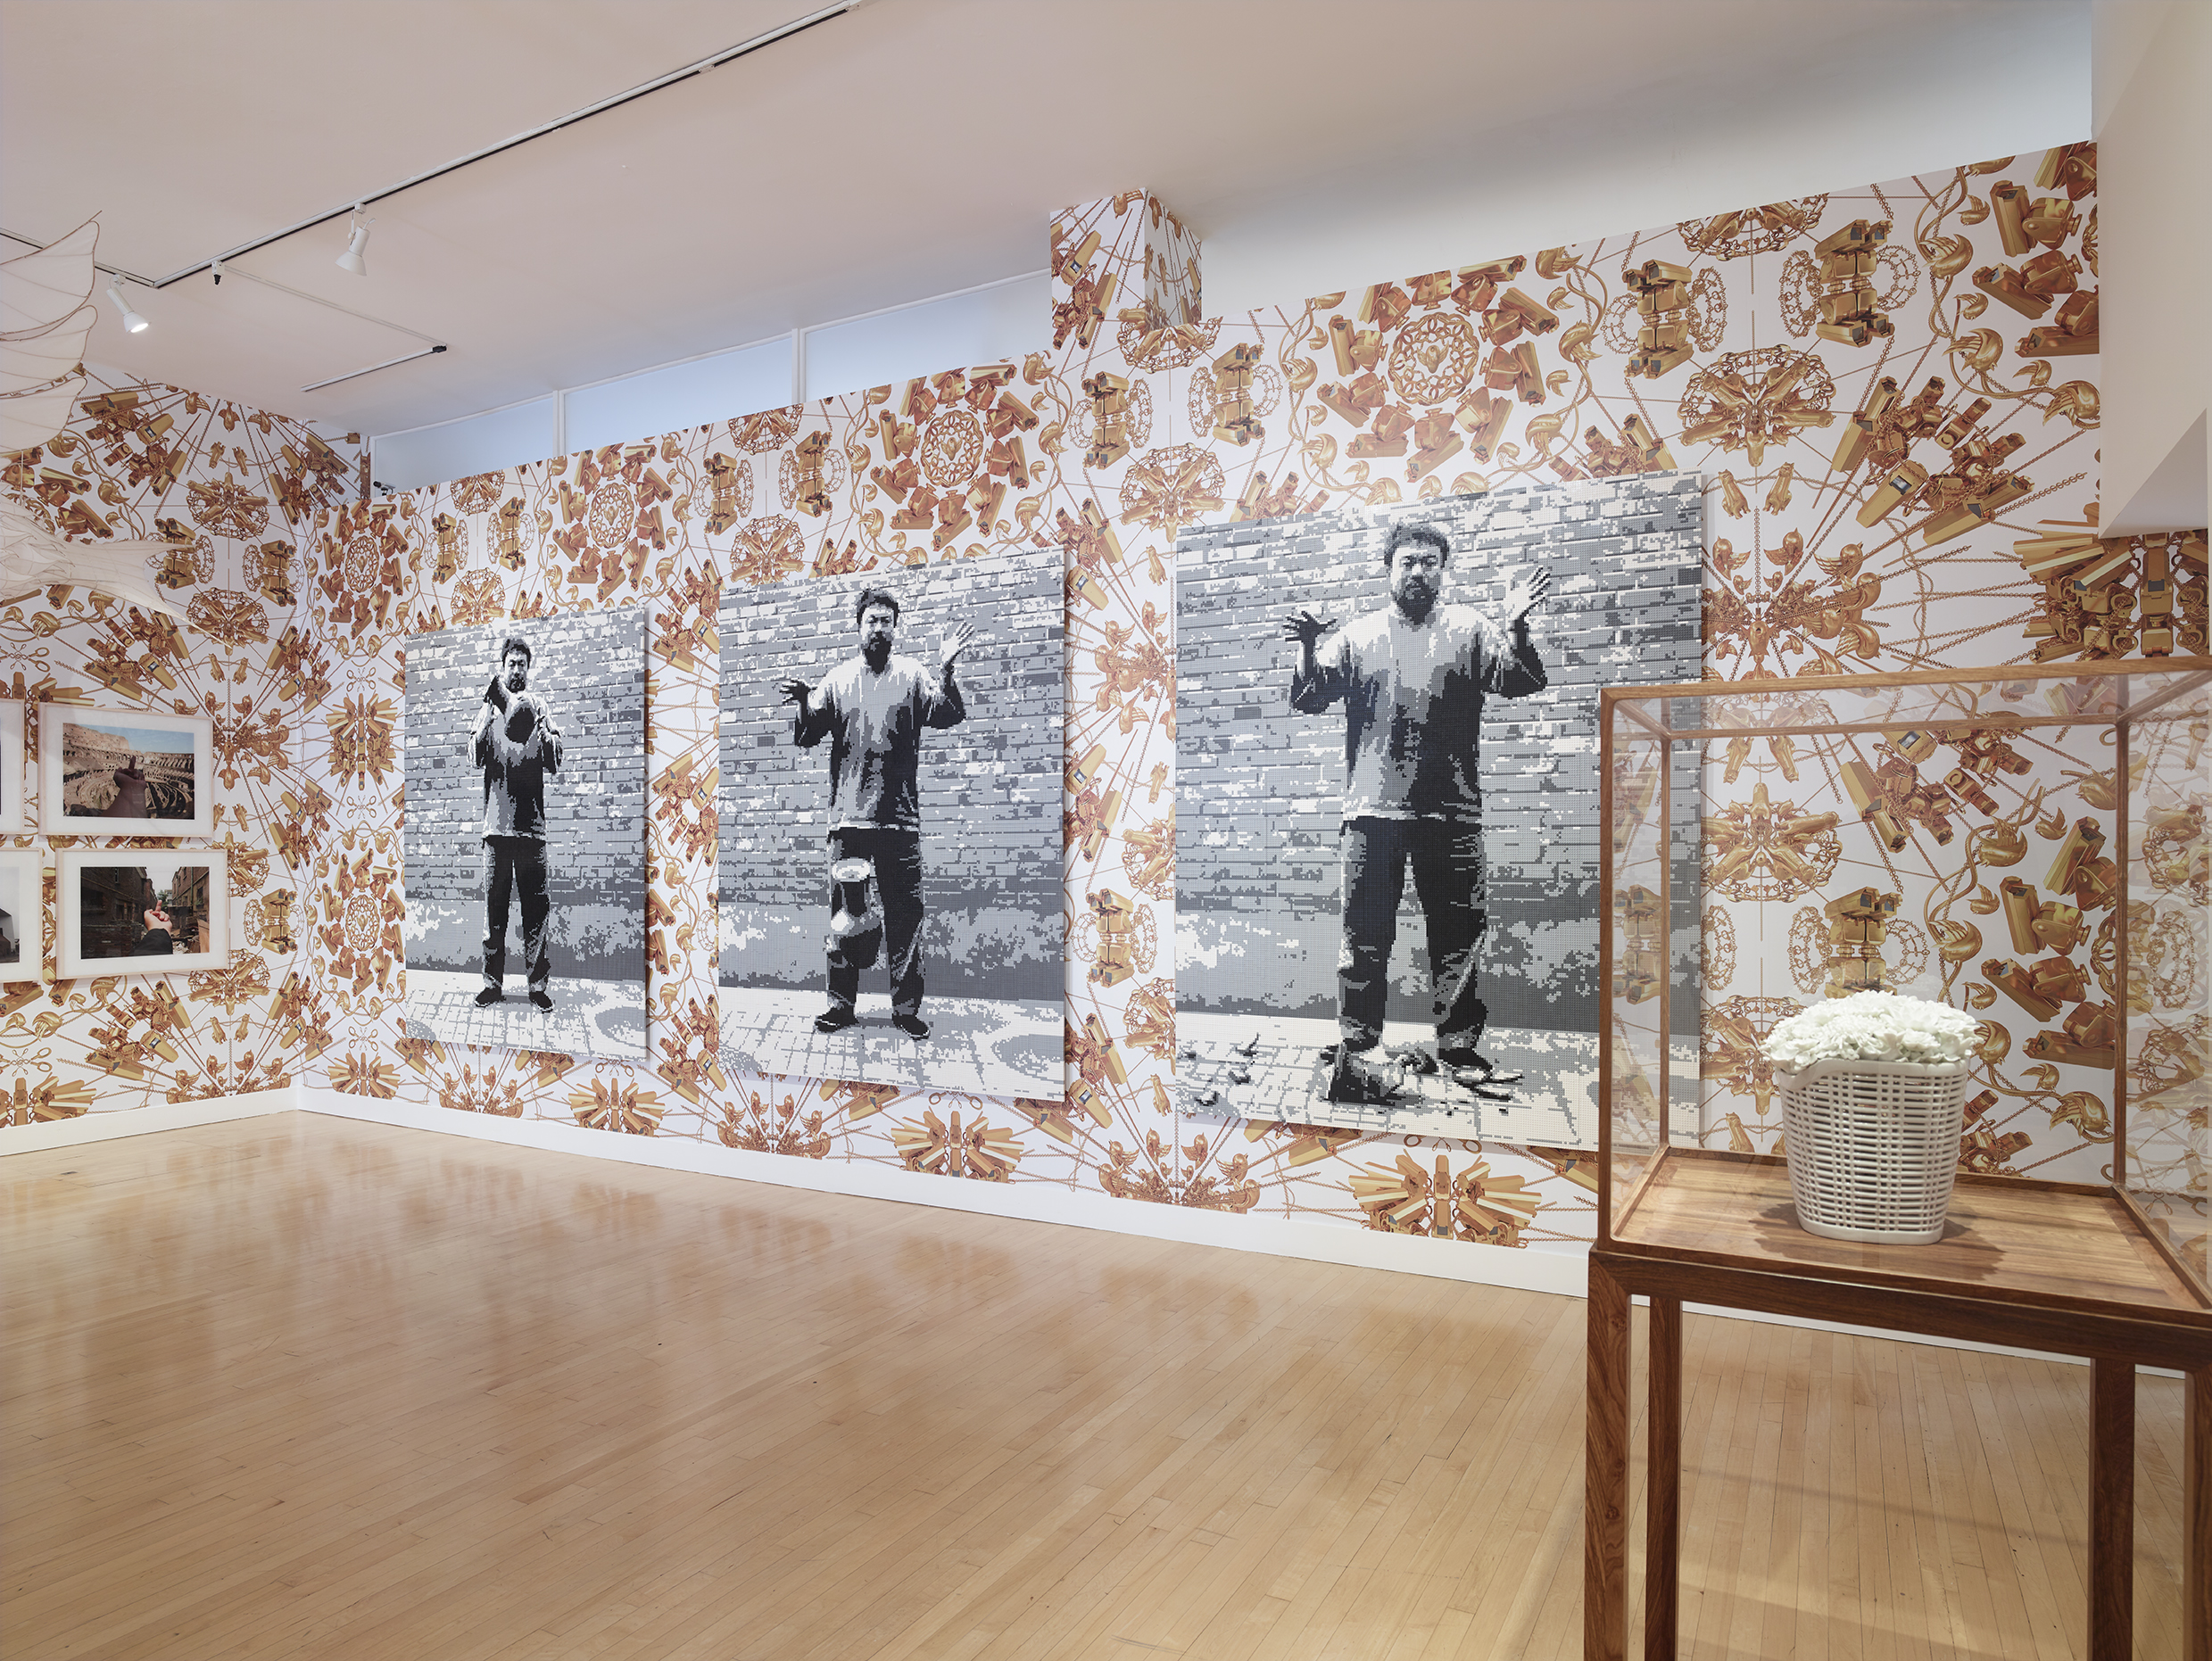 160508_HainesGallery_AiWeiWei_Overrated_RDH_069.jpg